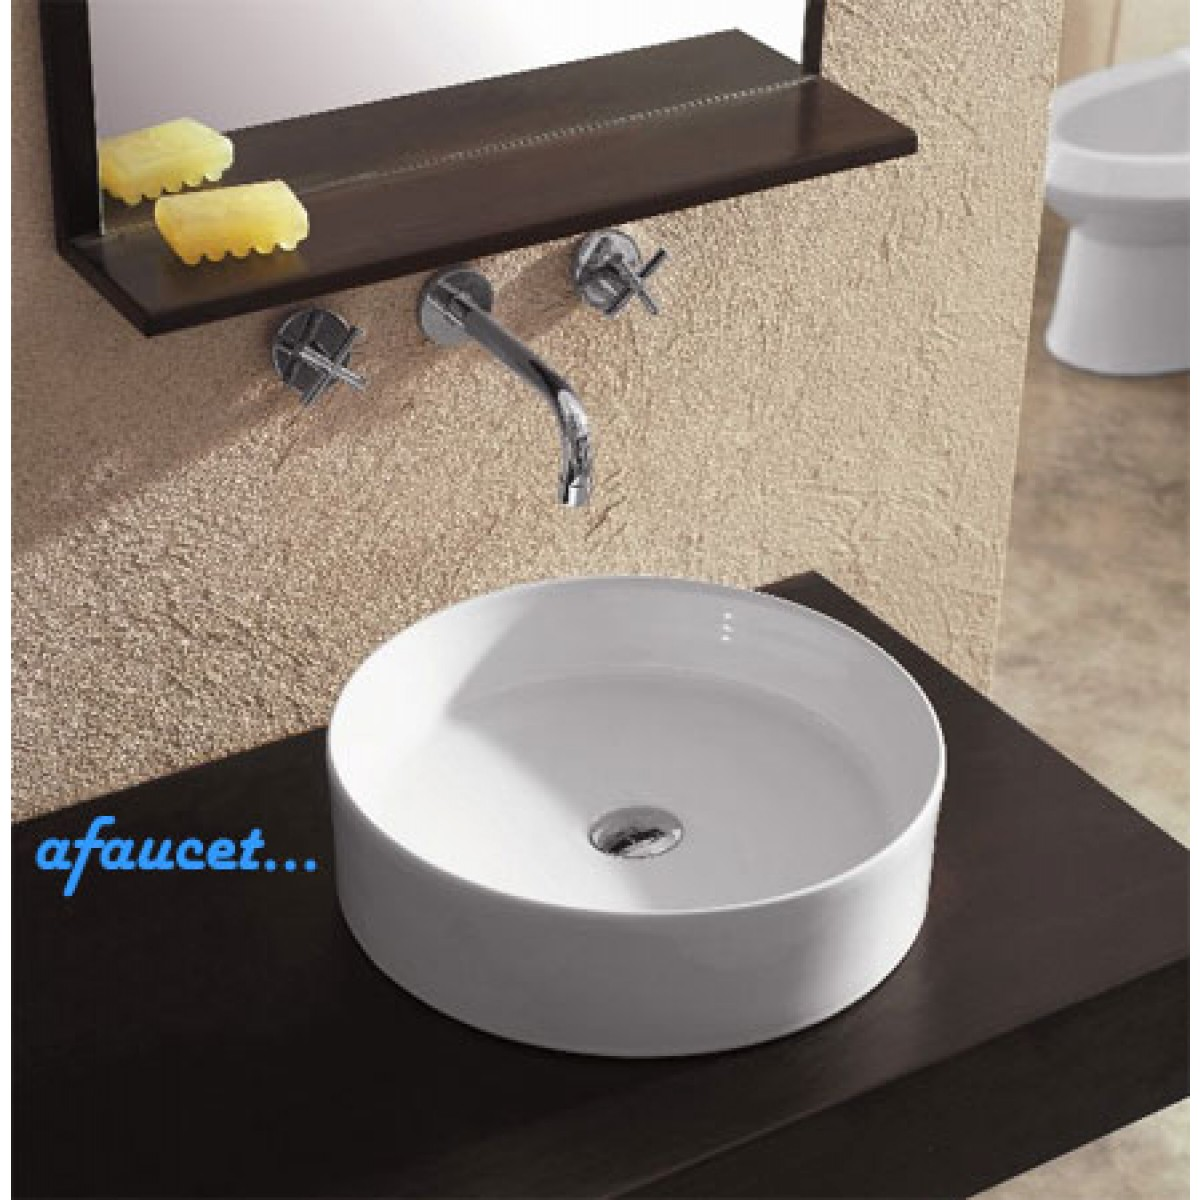 Perfect Round European Design White / Black Porcelain Ceramic Countertop Bathroom Vessel  Sink   18 1/8 X 6 1/8 Inch